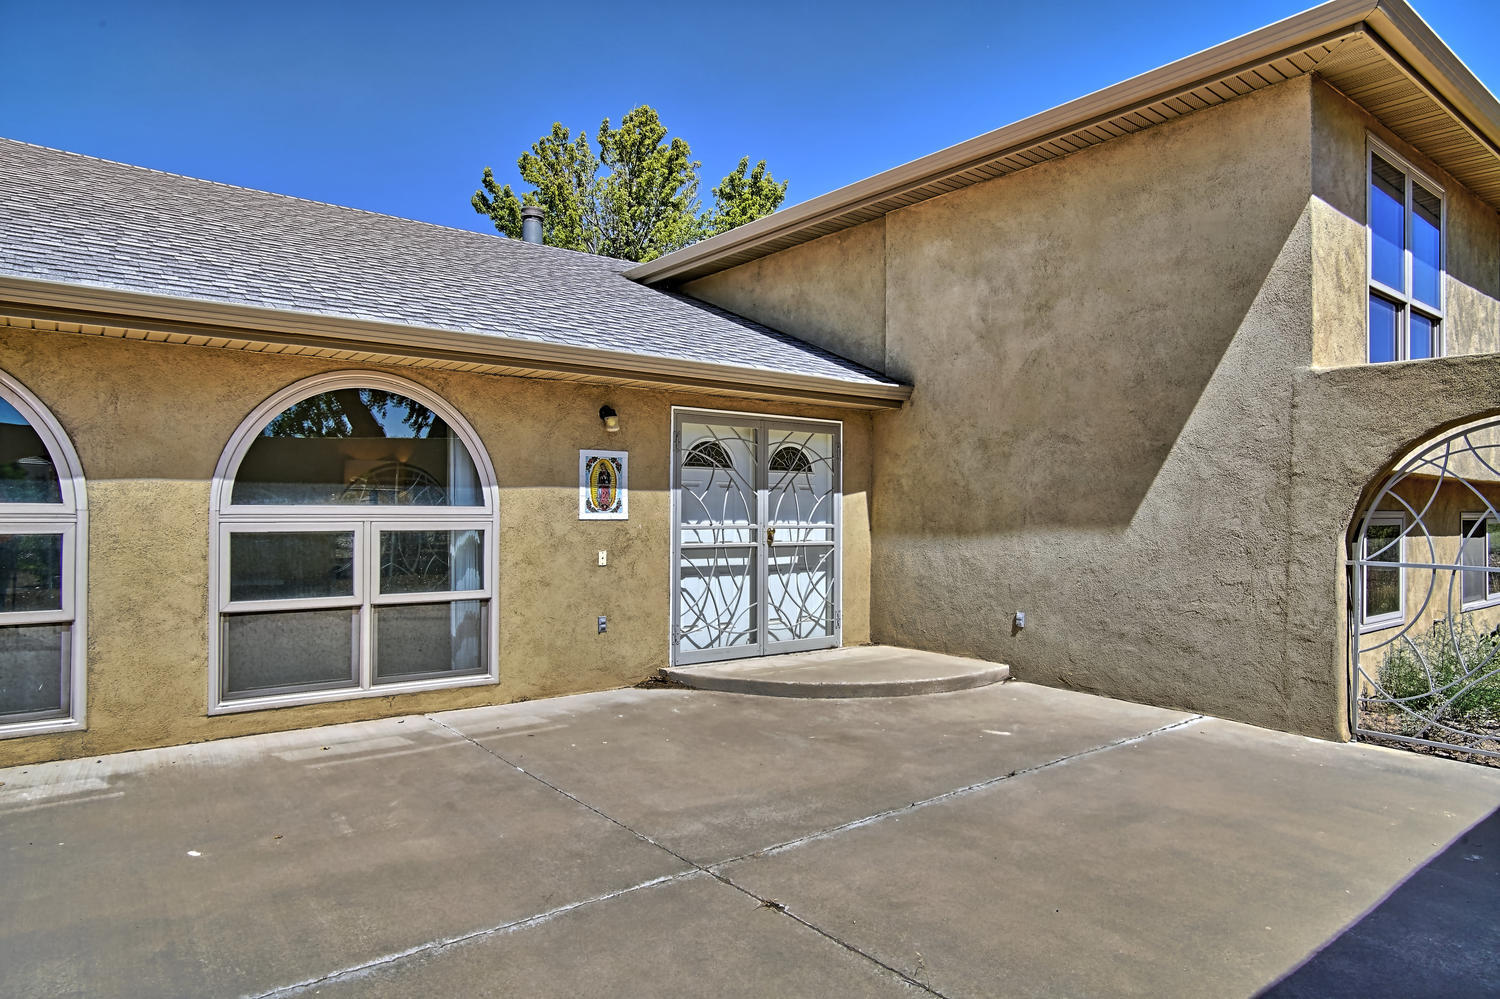 BACK ON THE MARKET!! This FULLY REMODELED Tri-Level home is waiting for you. Home features 5 bedrooms, 4 baths, and a theater room, and it sits on a full Acre. It is Modern and sleek inside with all NEW wood floors and FRESH carpet and paint, newer roof, 2 refrigerated air units, & a newer water heater & windows, all with brand NEW Hunter Douglas blinds. The kitchen, w/ all NEW stainless steel appliances, opens up into multiple living areas that are perfect for entertaining. The whole place is bright and open. The Master bedroom has its own private spa-like full bath w/ radiant heating in the floors. This home has so much space and storage, and is ready for you to call it your home. Come see it before it's gone! *Please note, this property is in a Flood Zone, and requires flood insurance.